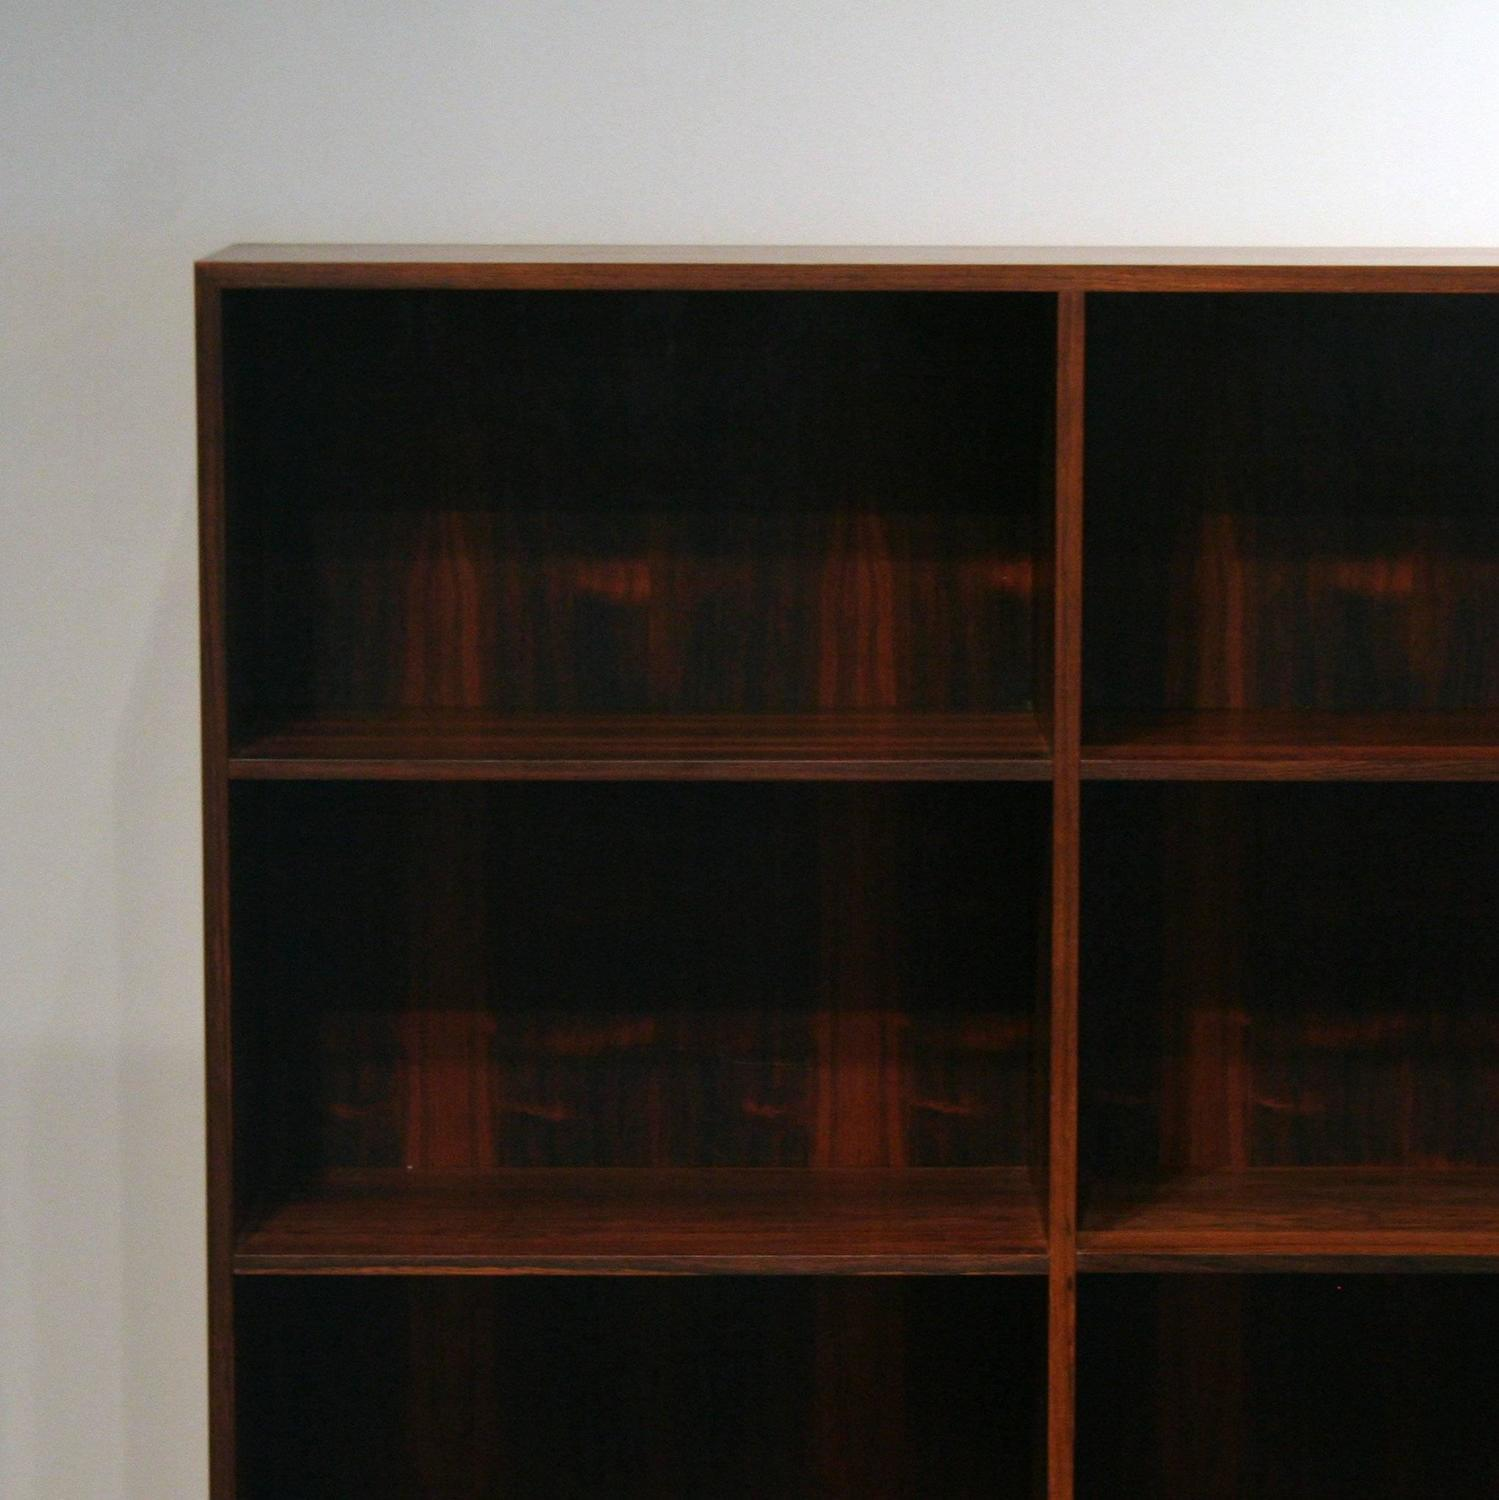 #623019 Vintage Danish Rosewood Wide Bookcase At 1stdibs with 1499x1500 px of Best 60 Wide Bookcase 15001499 image @ avoidforclosure.info